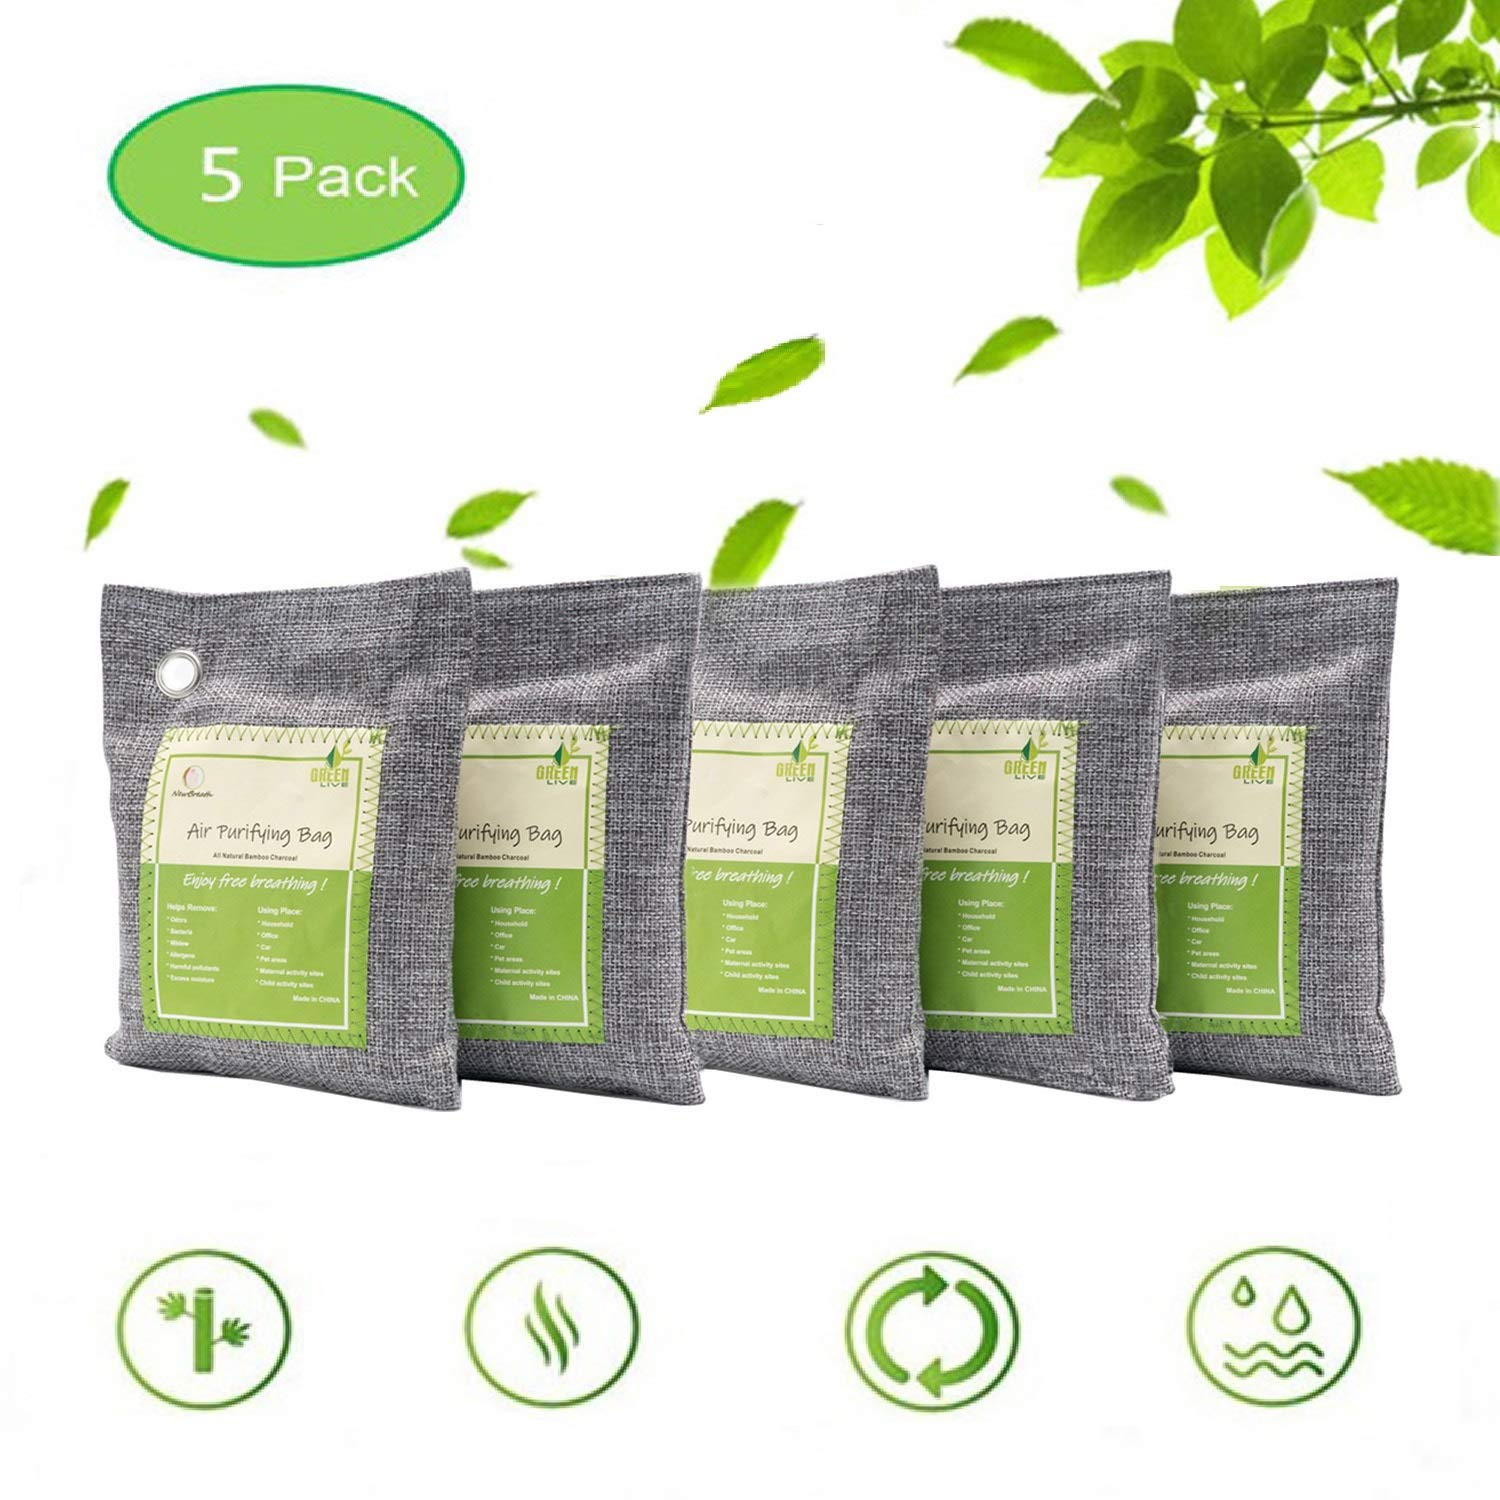 Air Purifying Bags Activated Bamboo Charcoal Natural Air Purifier Freshener Neutralizer Filter Odor Remove Eliminator Deodorizer Moisture Absorber for Home, Car, Closet, Bathroom, Basement, Litter Box, Shoe (5 Pack, 200g Each) by SNAWOWO